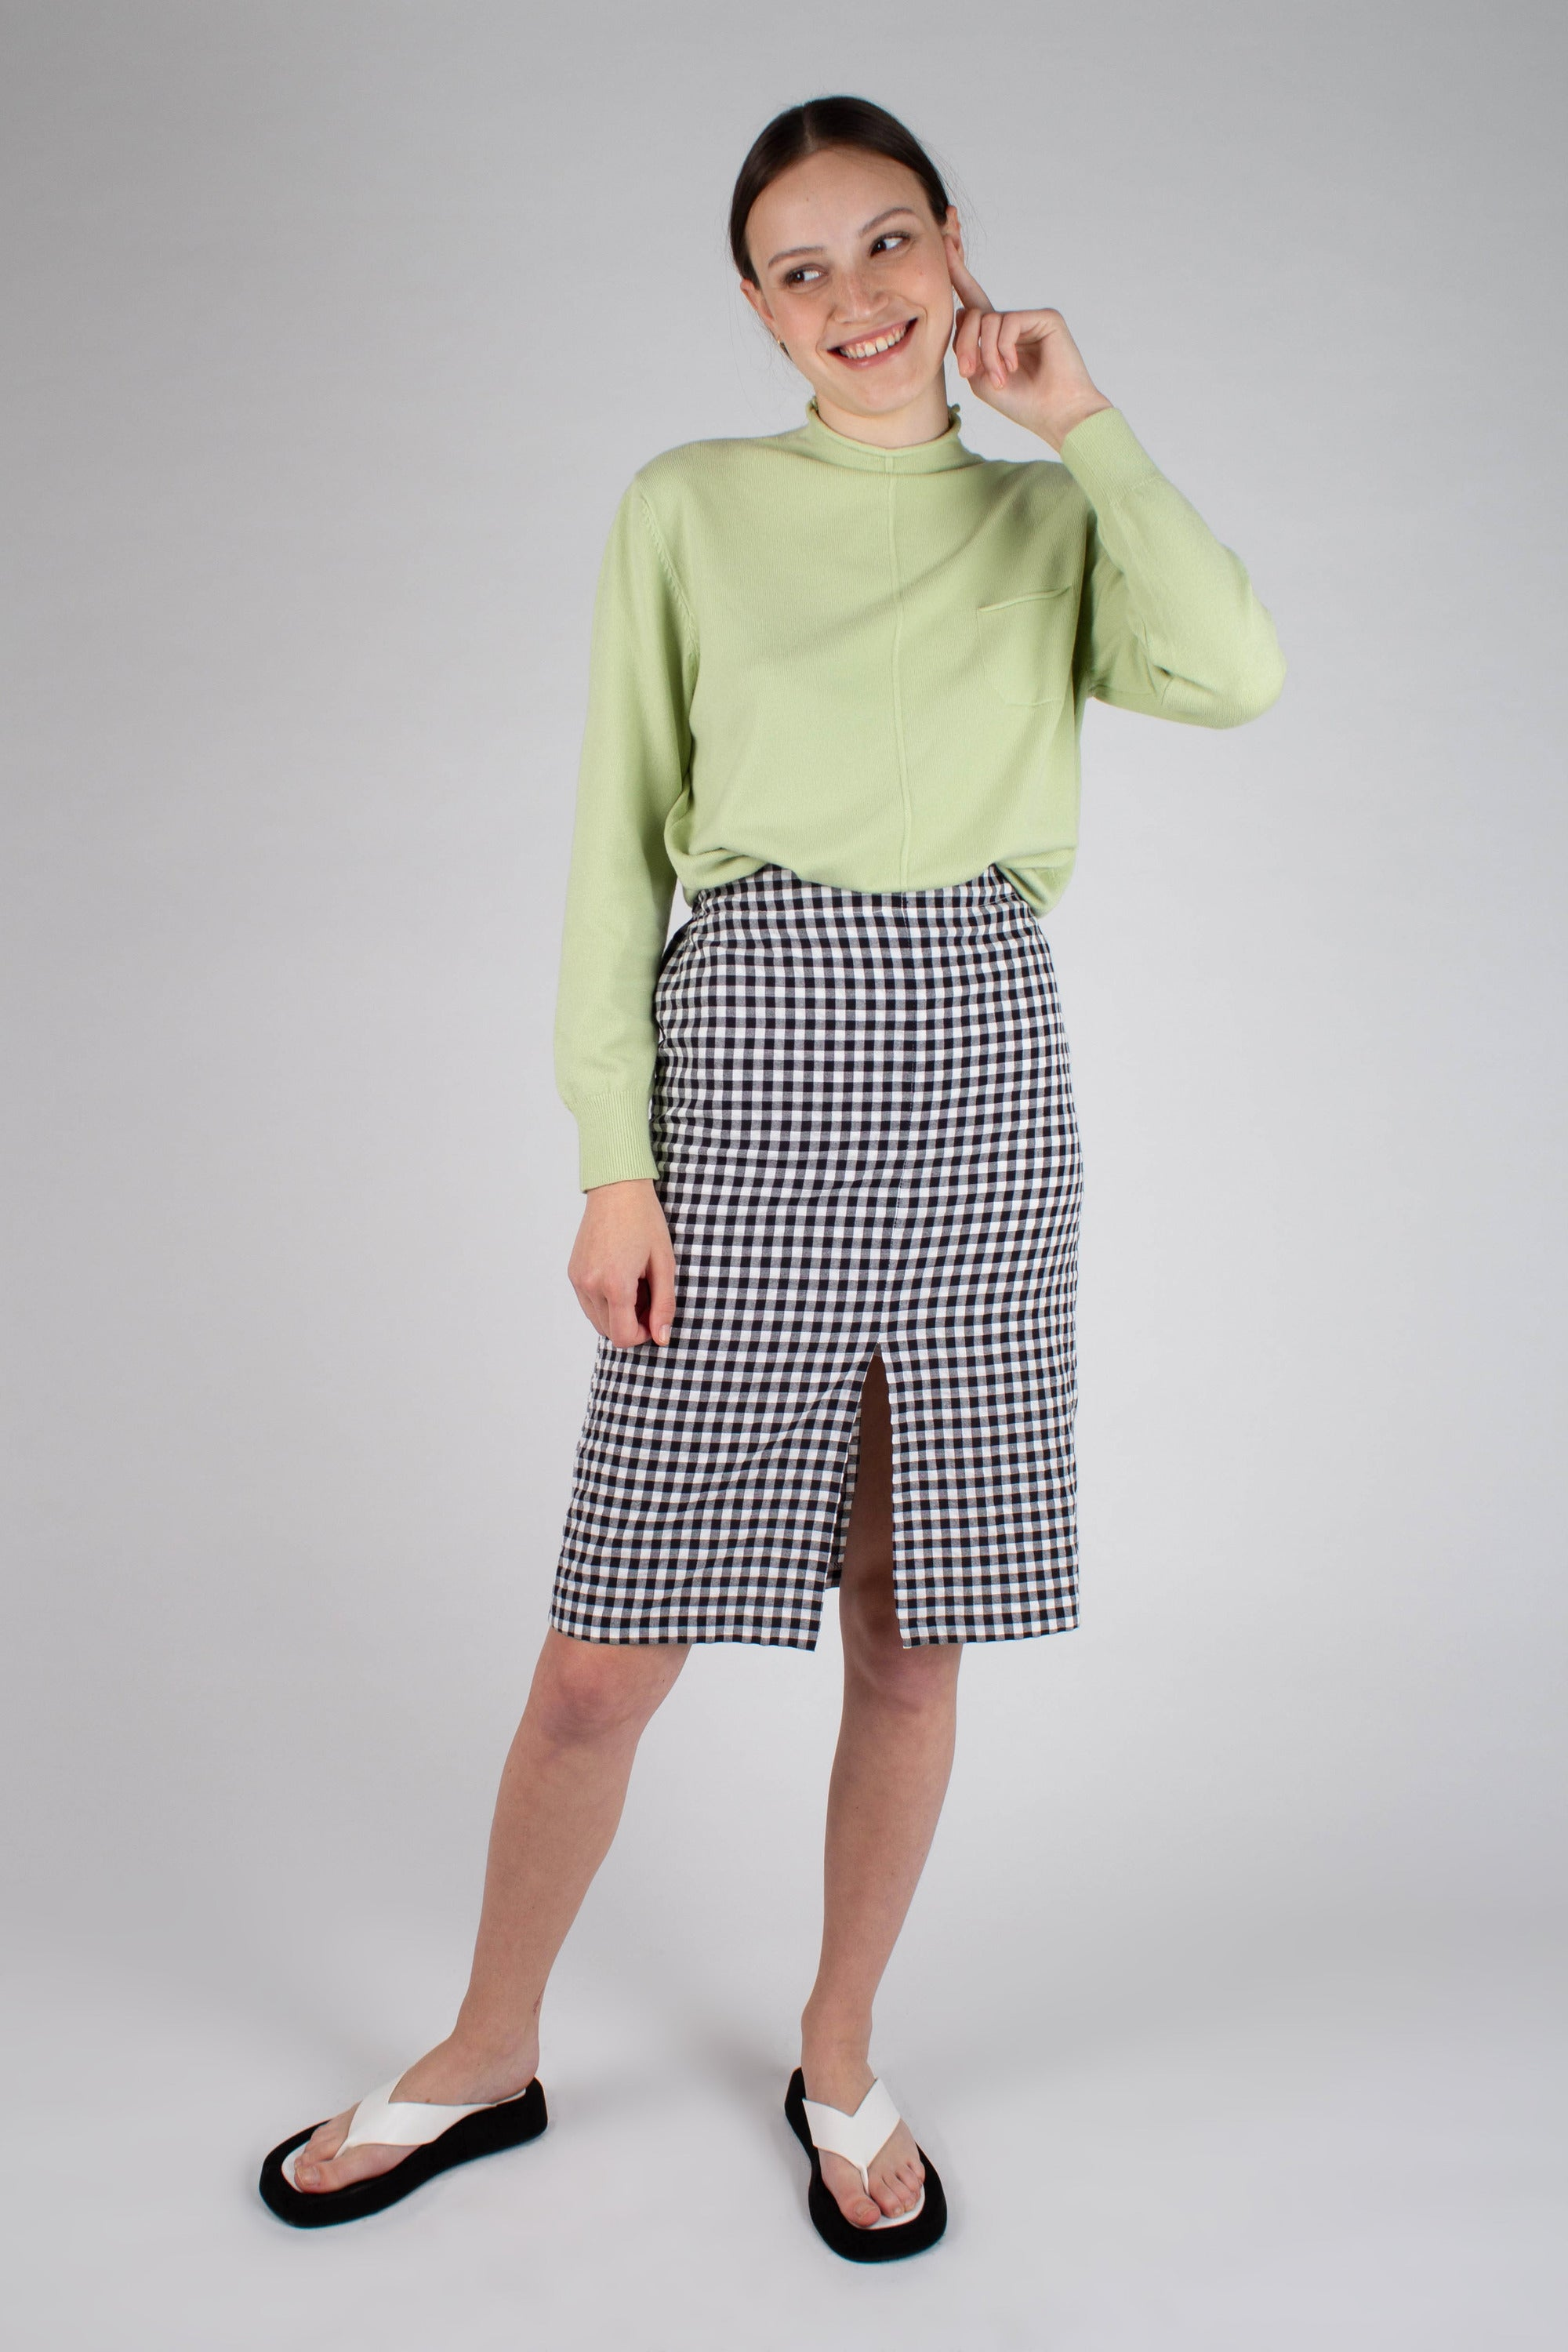 21751_Green chest pocket mock neck knit top_MFFBA1